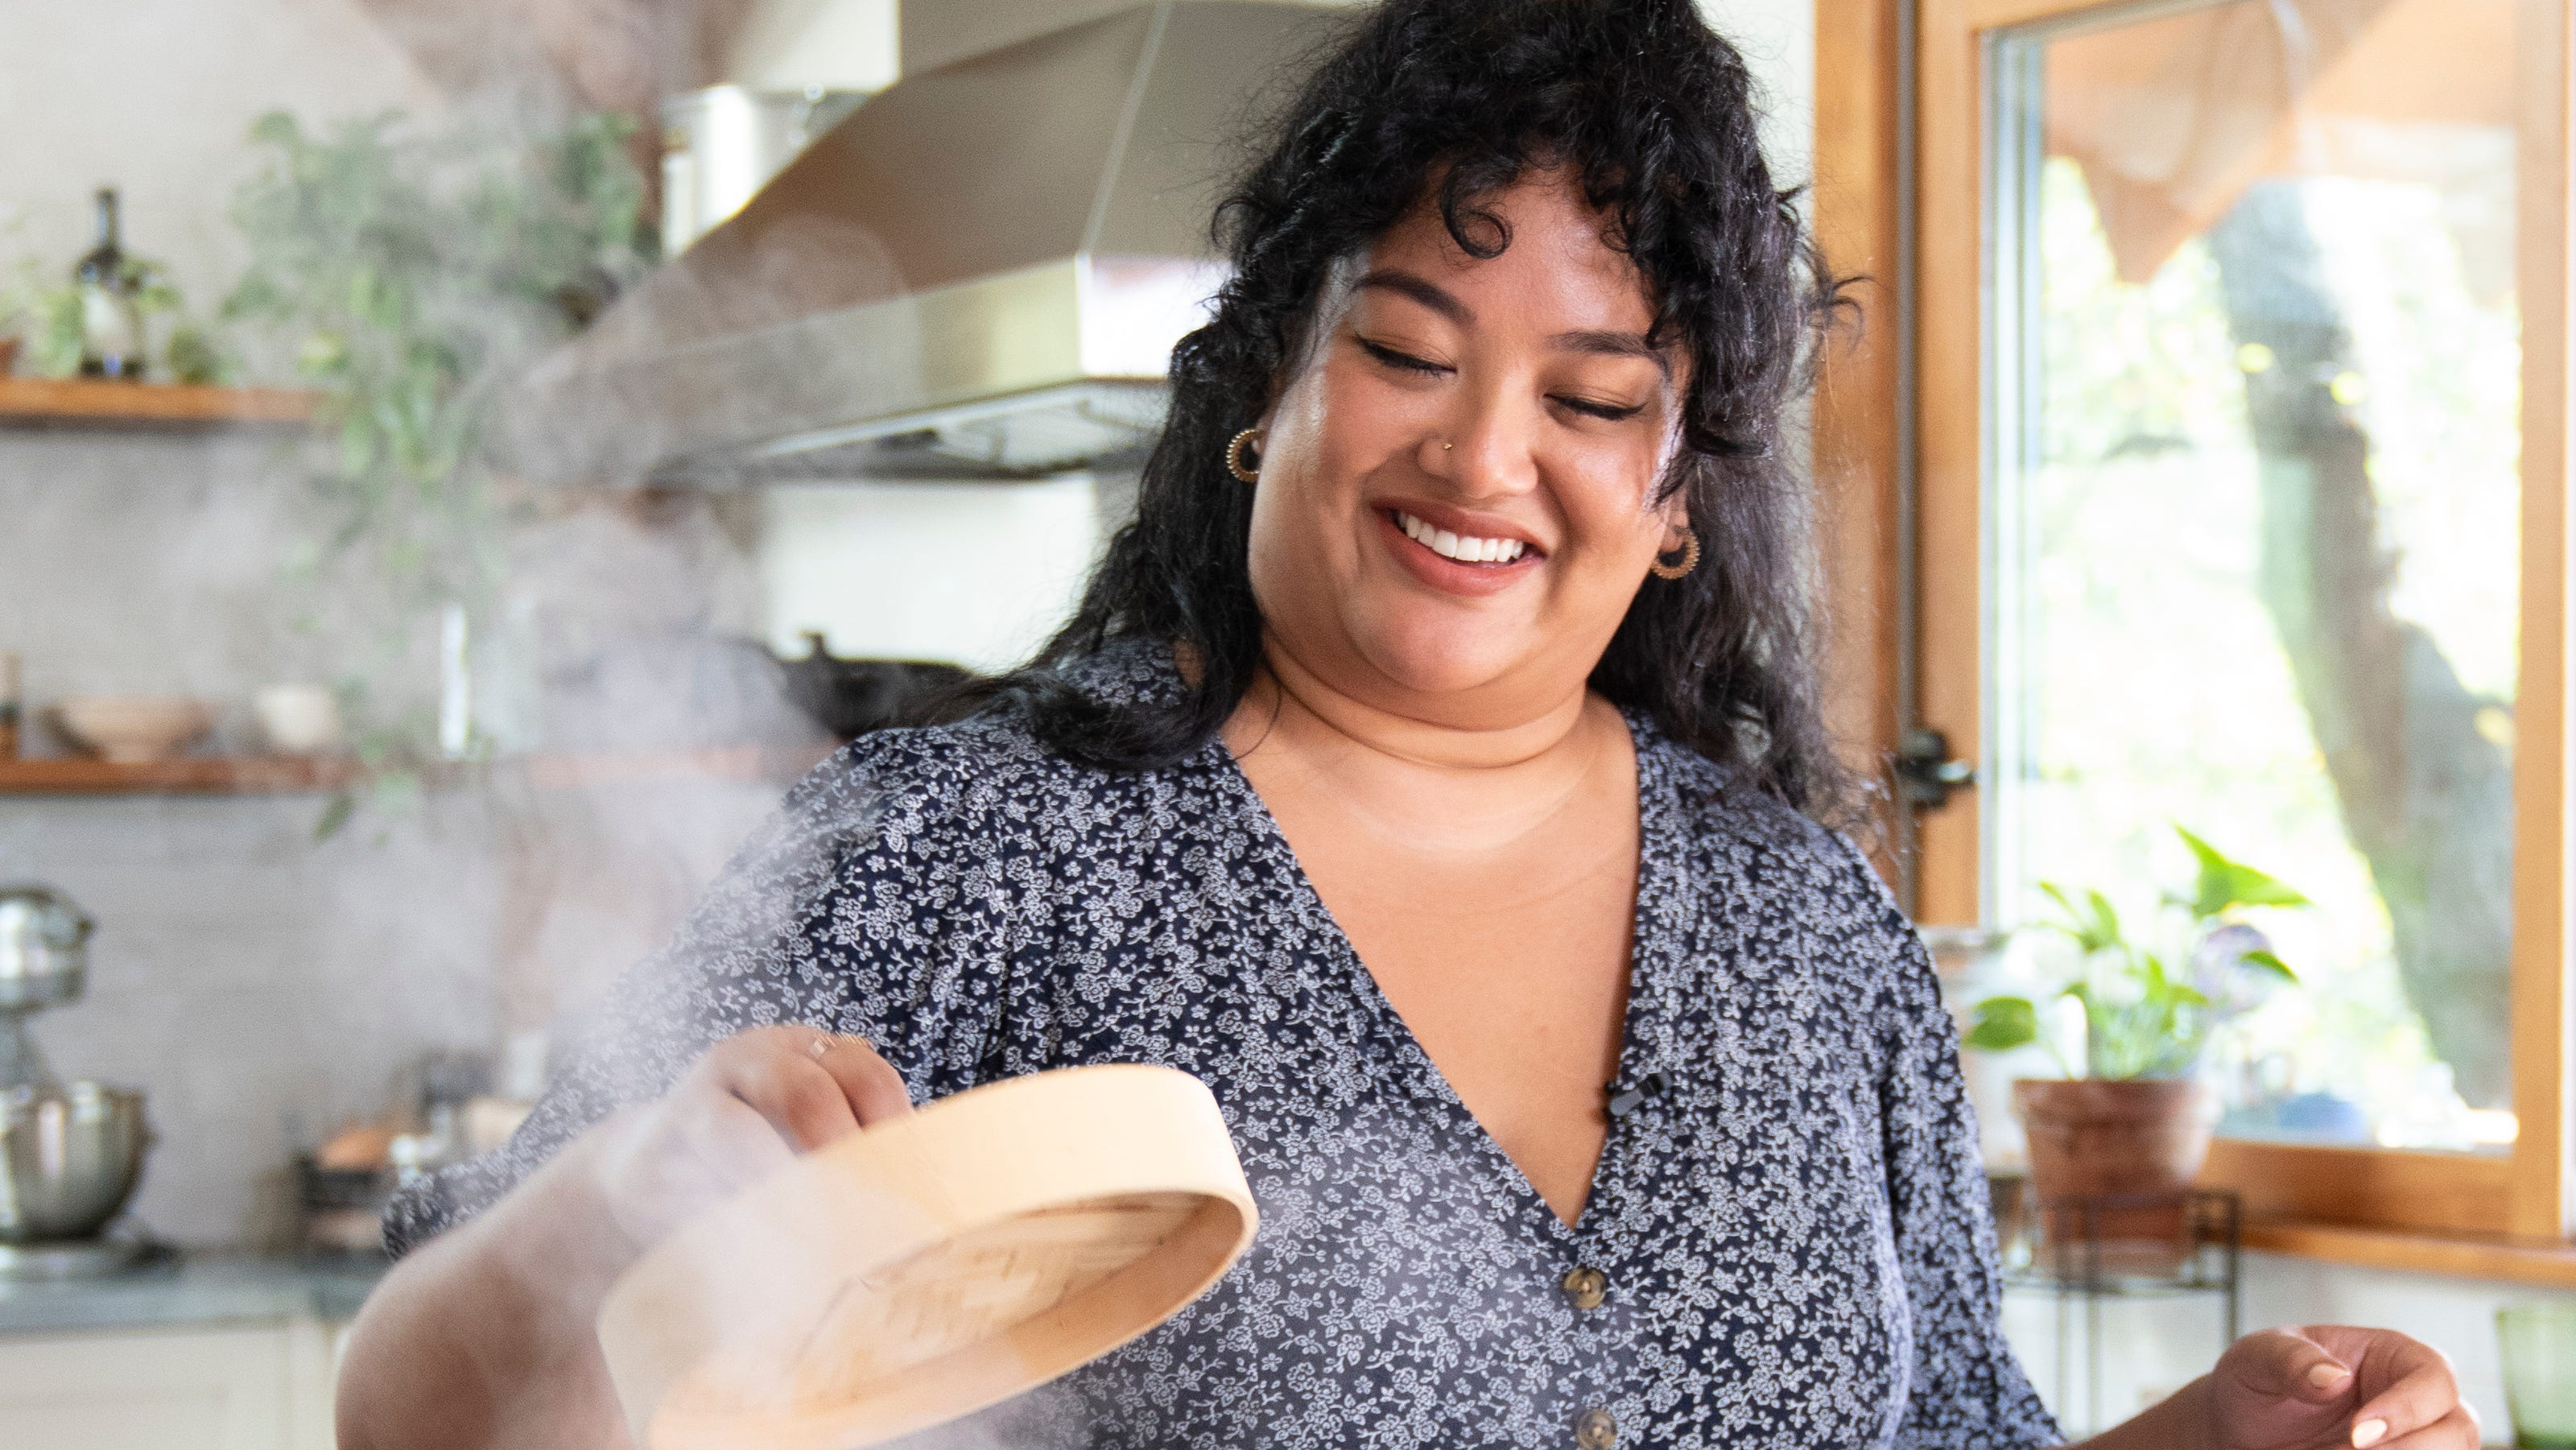 www.austin360.com: Tasting Texas: Two new cooking shows dive into Tex Mex, Filipino food culture